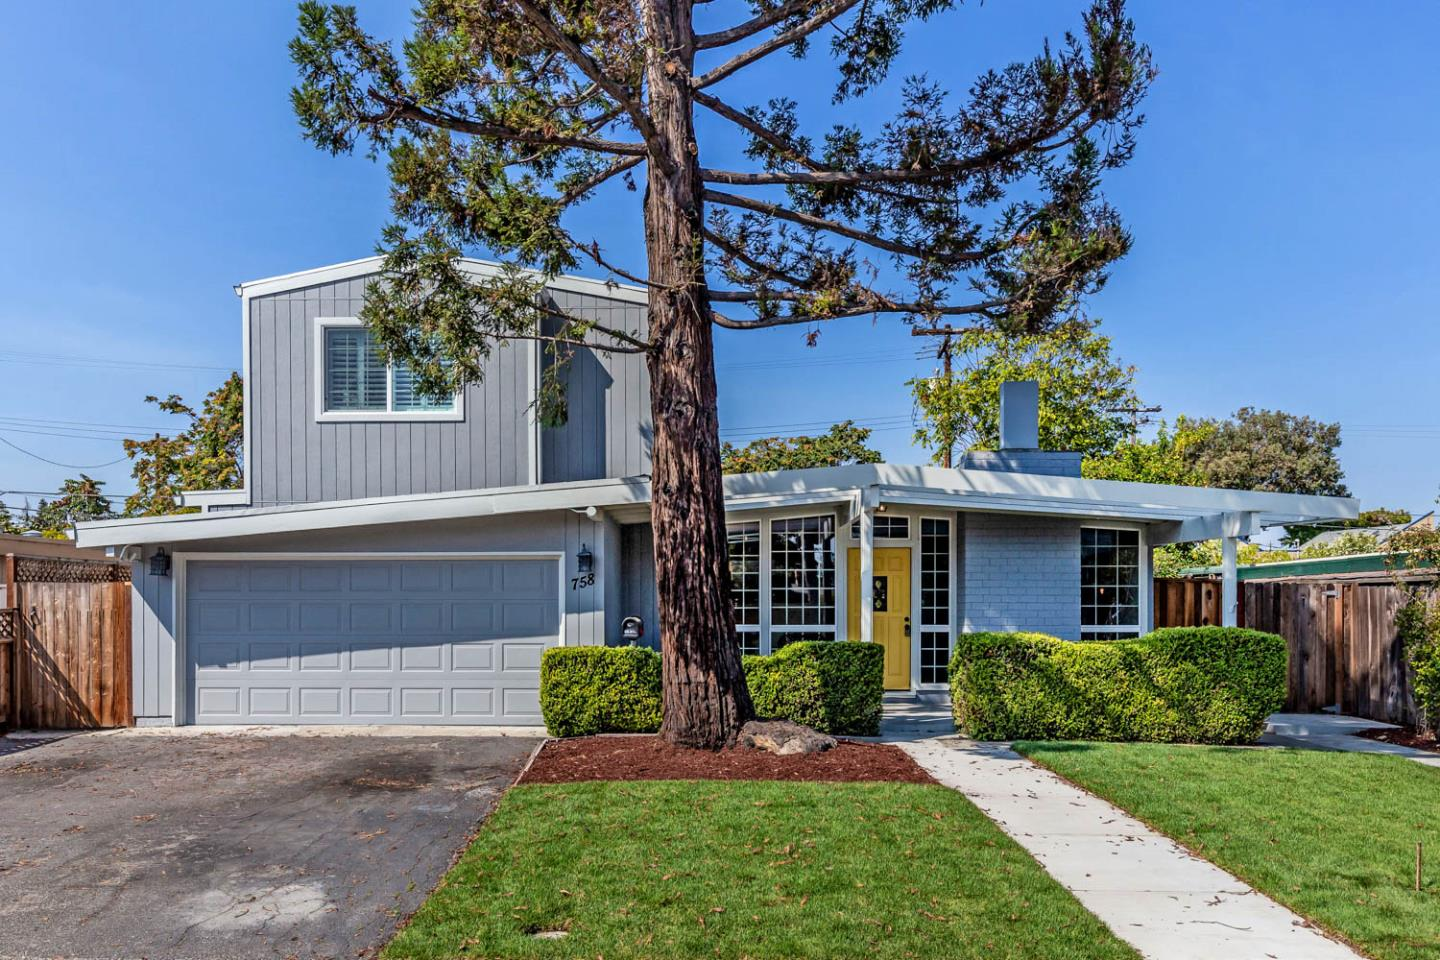 758 Telford AVE Mountain View CA 94043